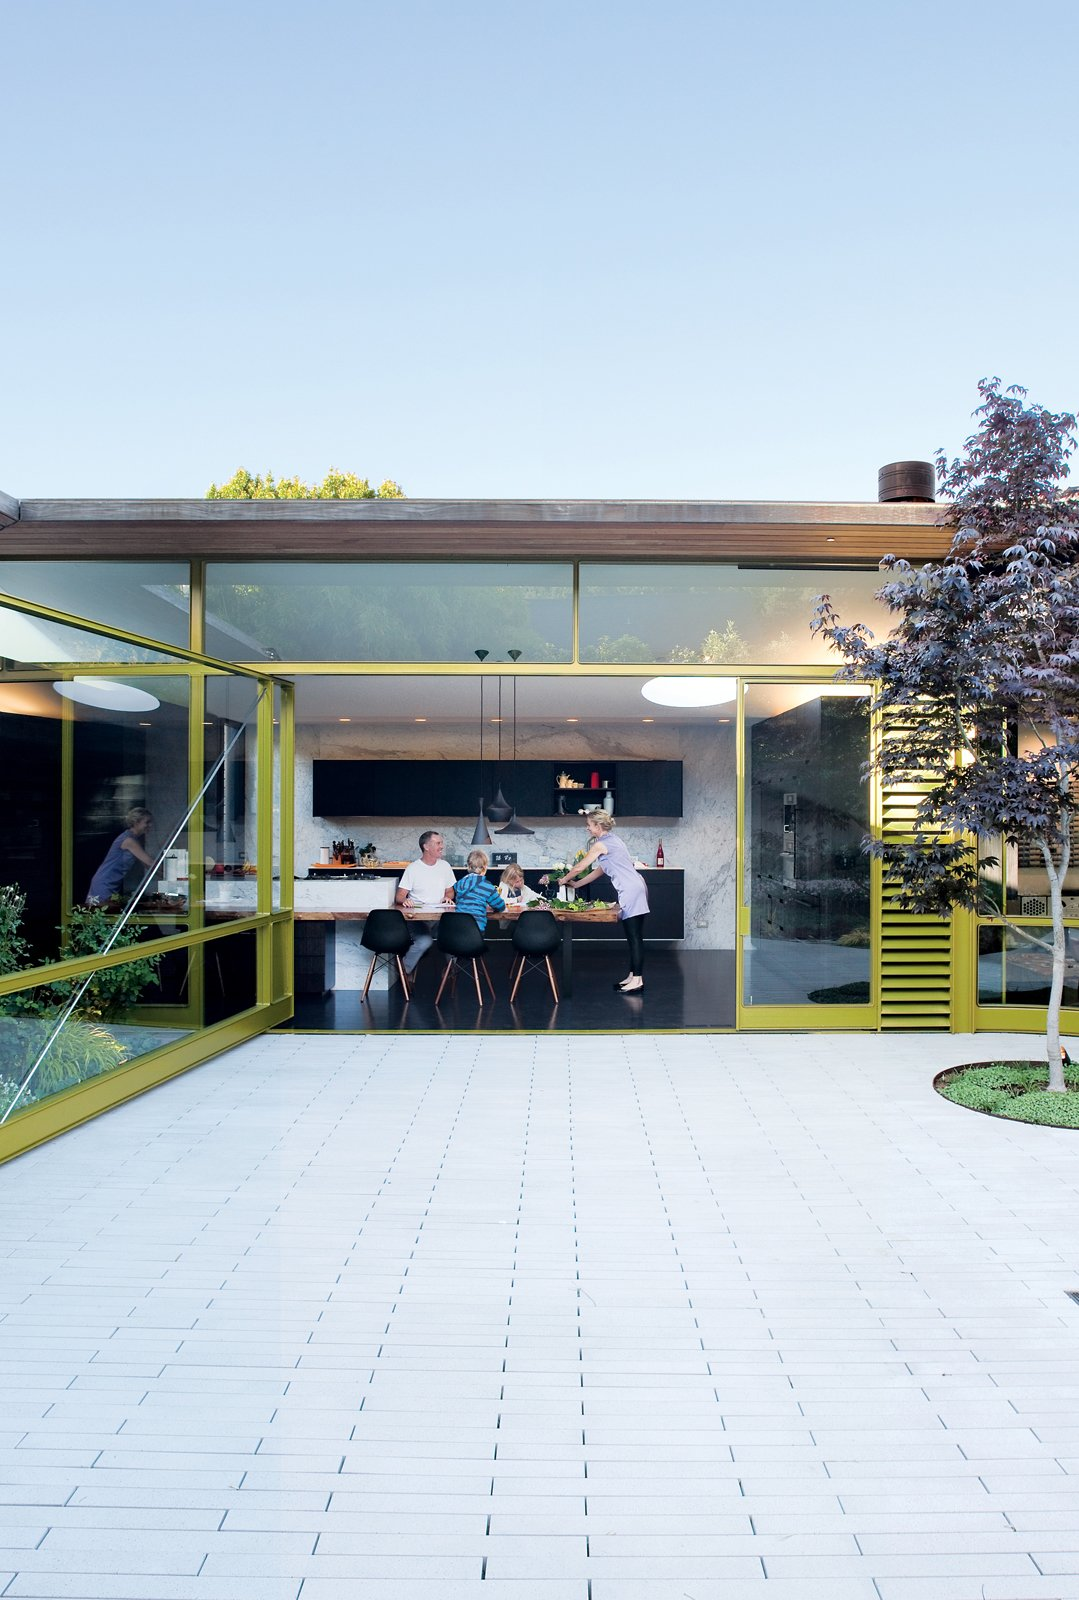 The Deam House by Lara Deam from Homes